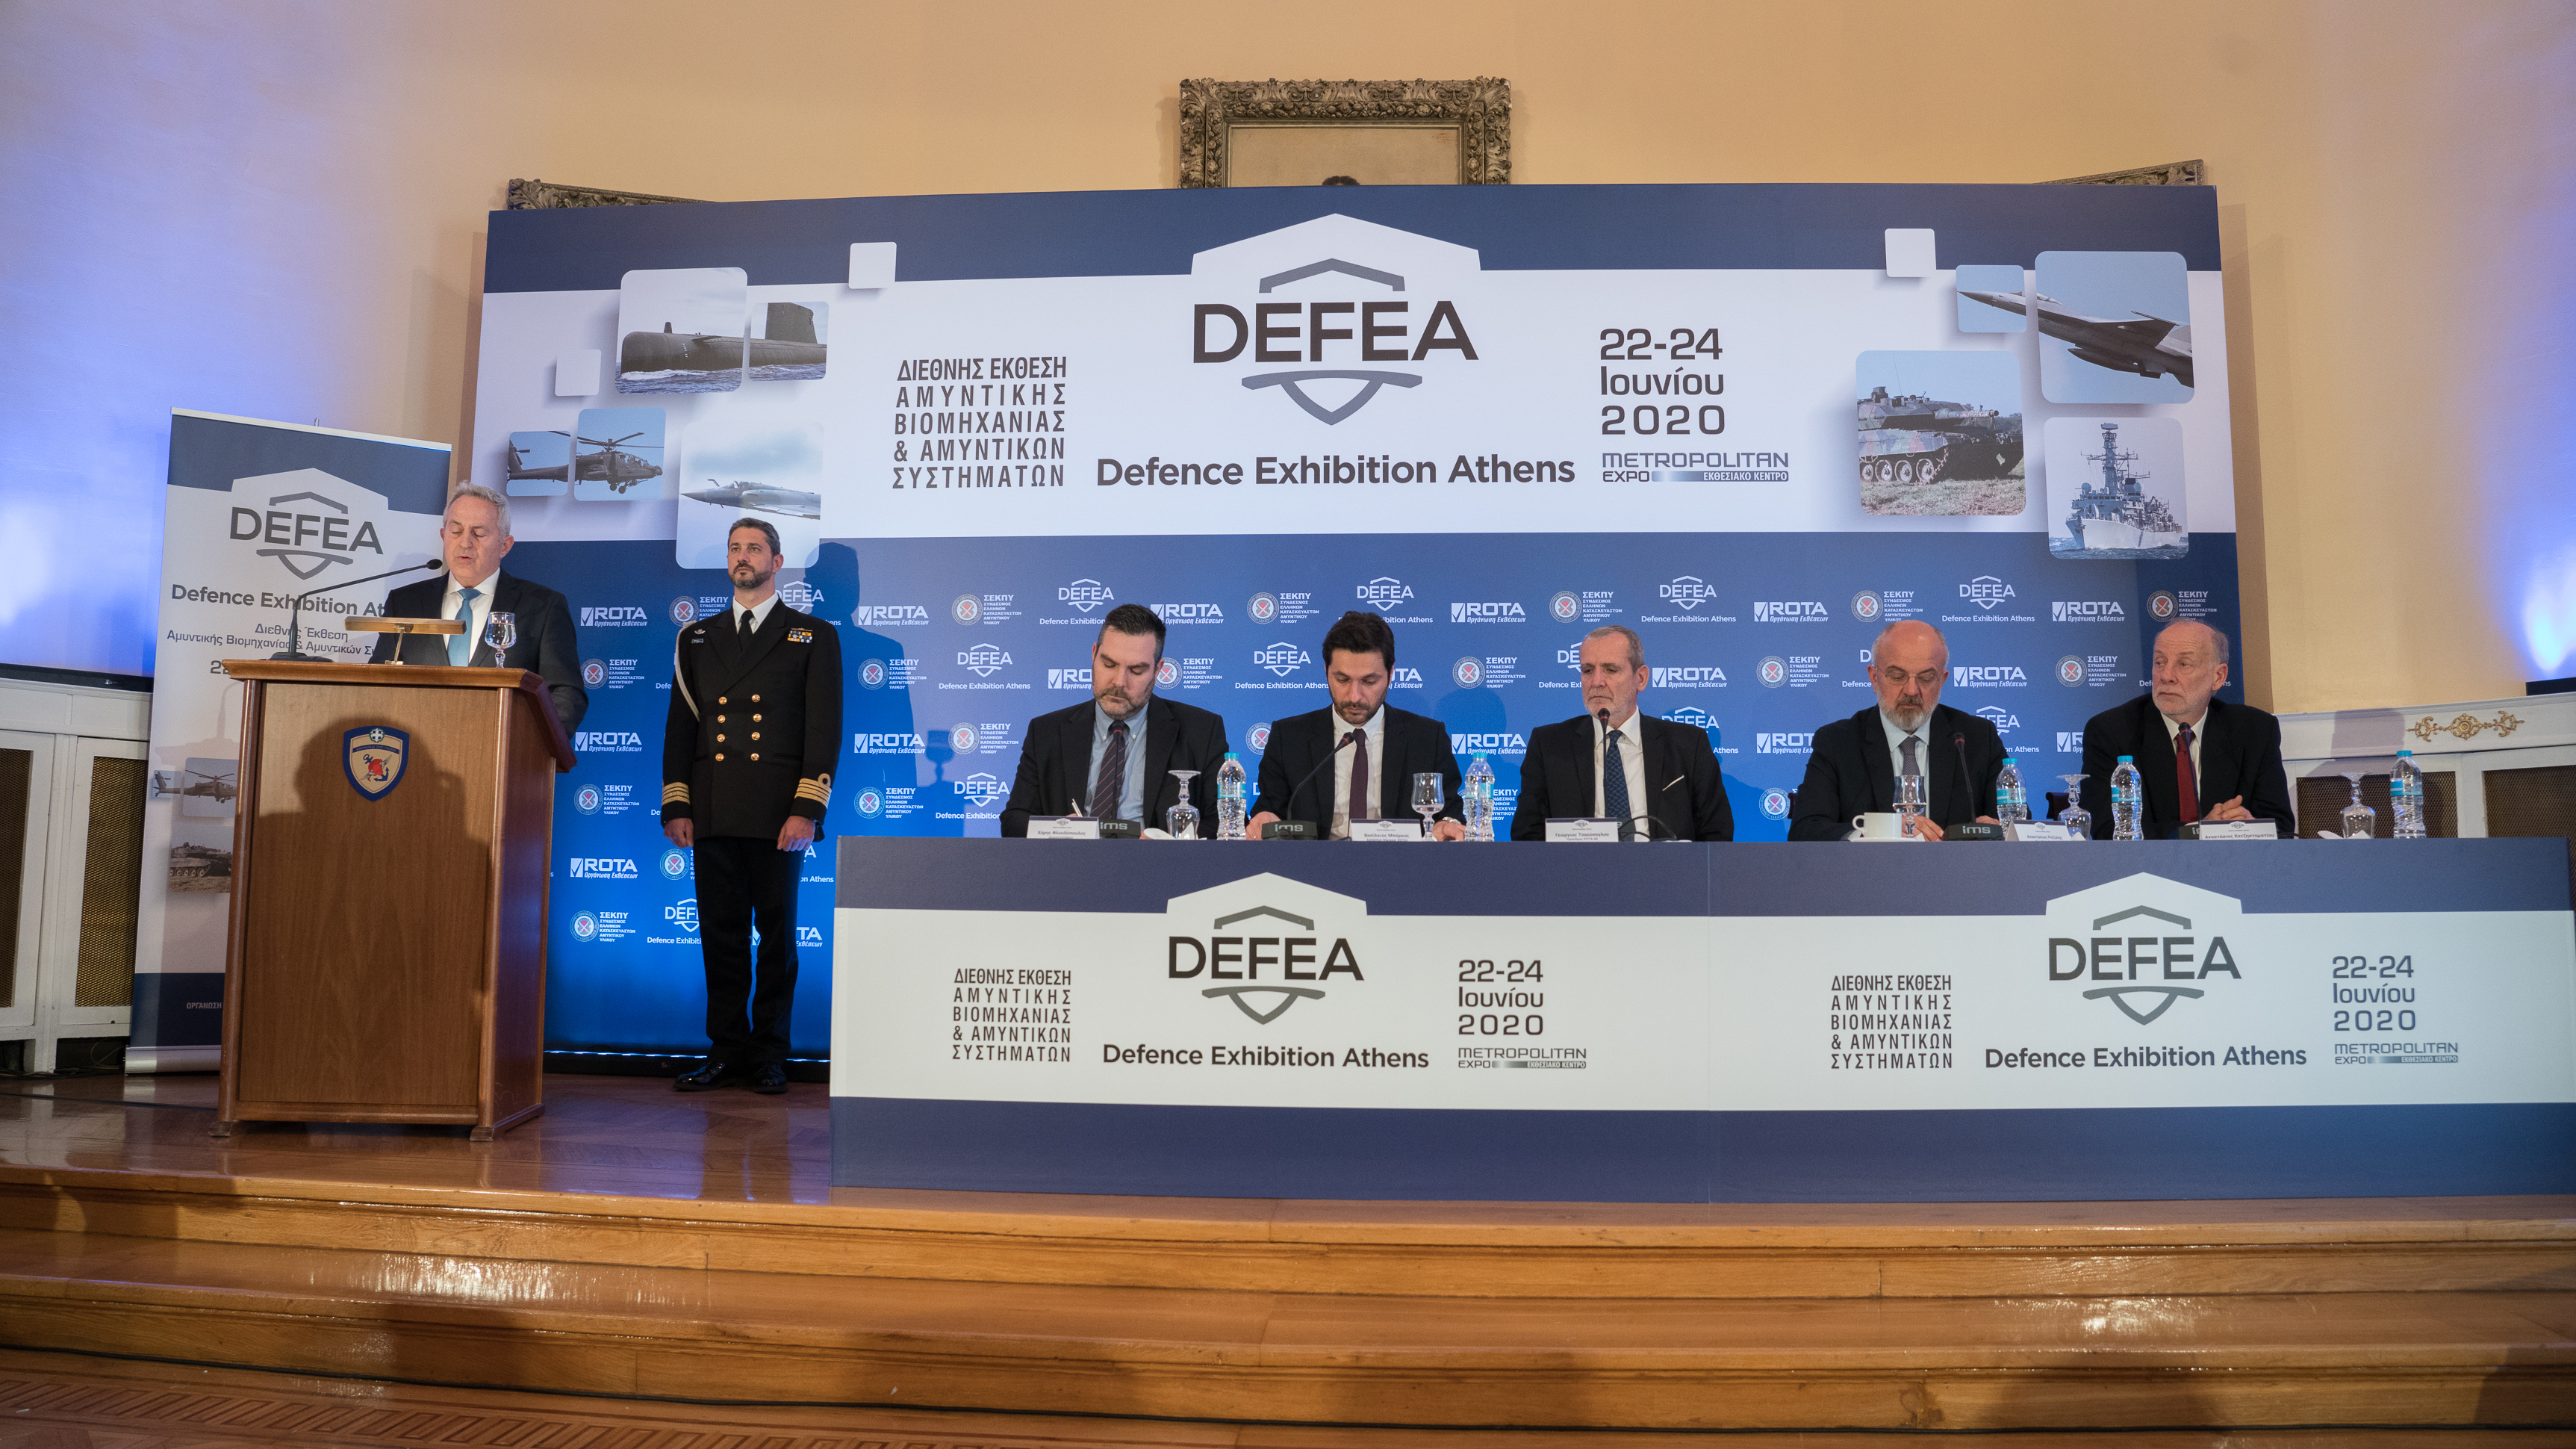 ROTA SA announces DEFEA – Defence Exhibition Athens